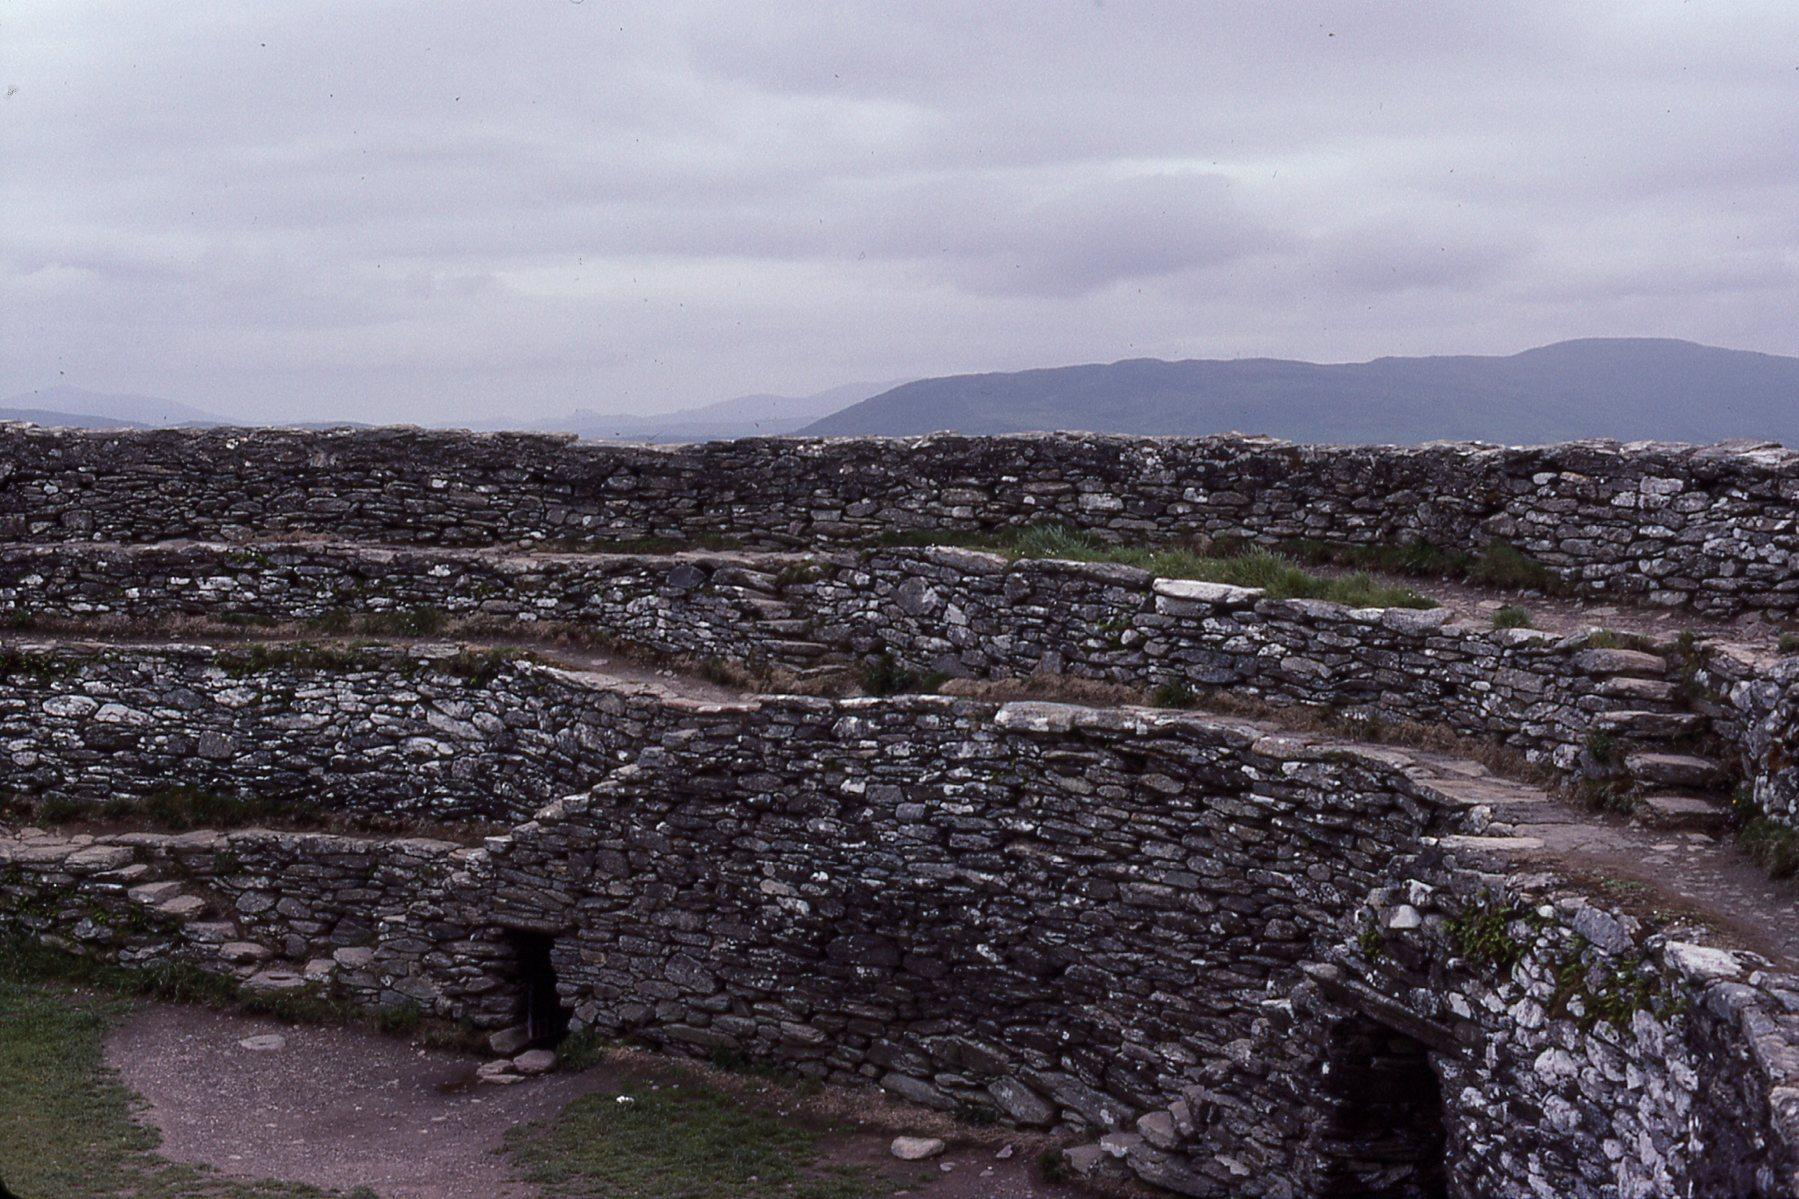 Grianon of Aileach built originally around 1800 BC.